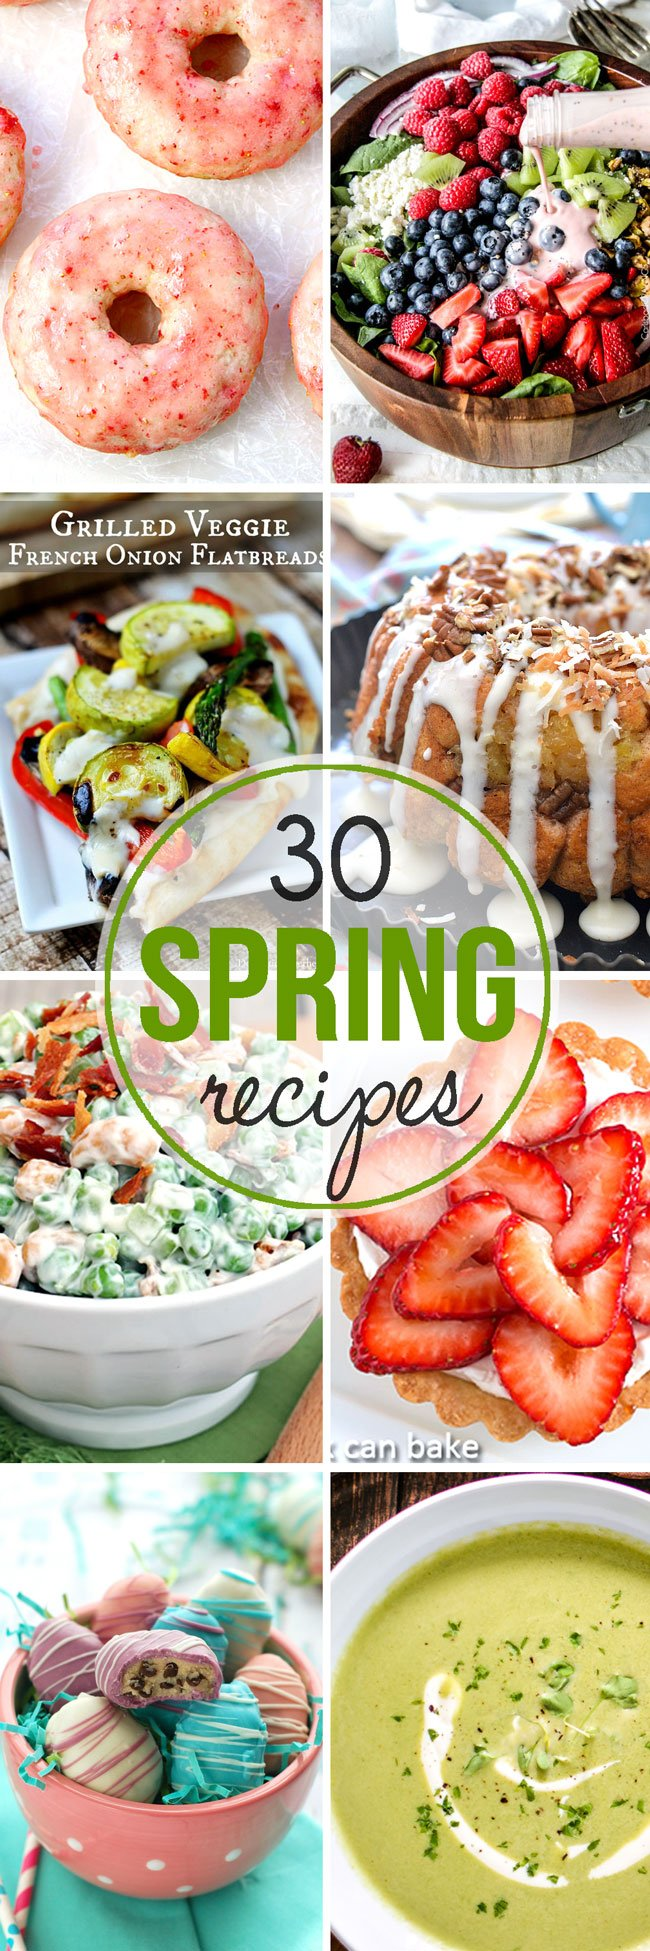 30 of the BEST Spring Recipes - from delicious grilled recipes to mouthwatering desserts!